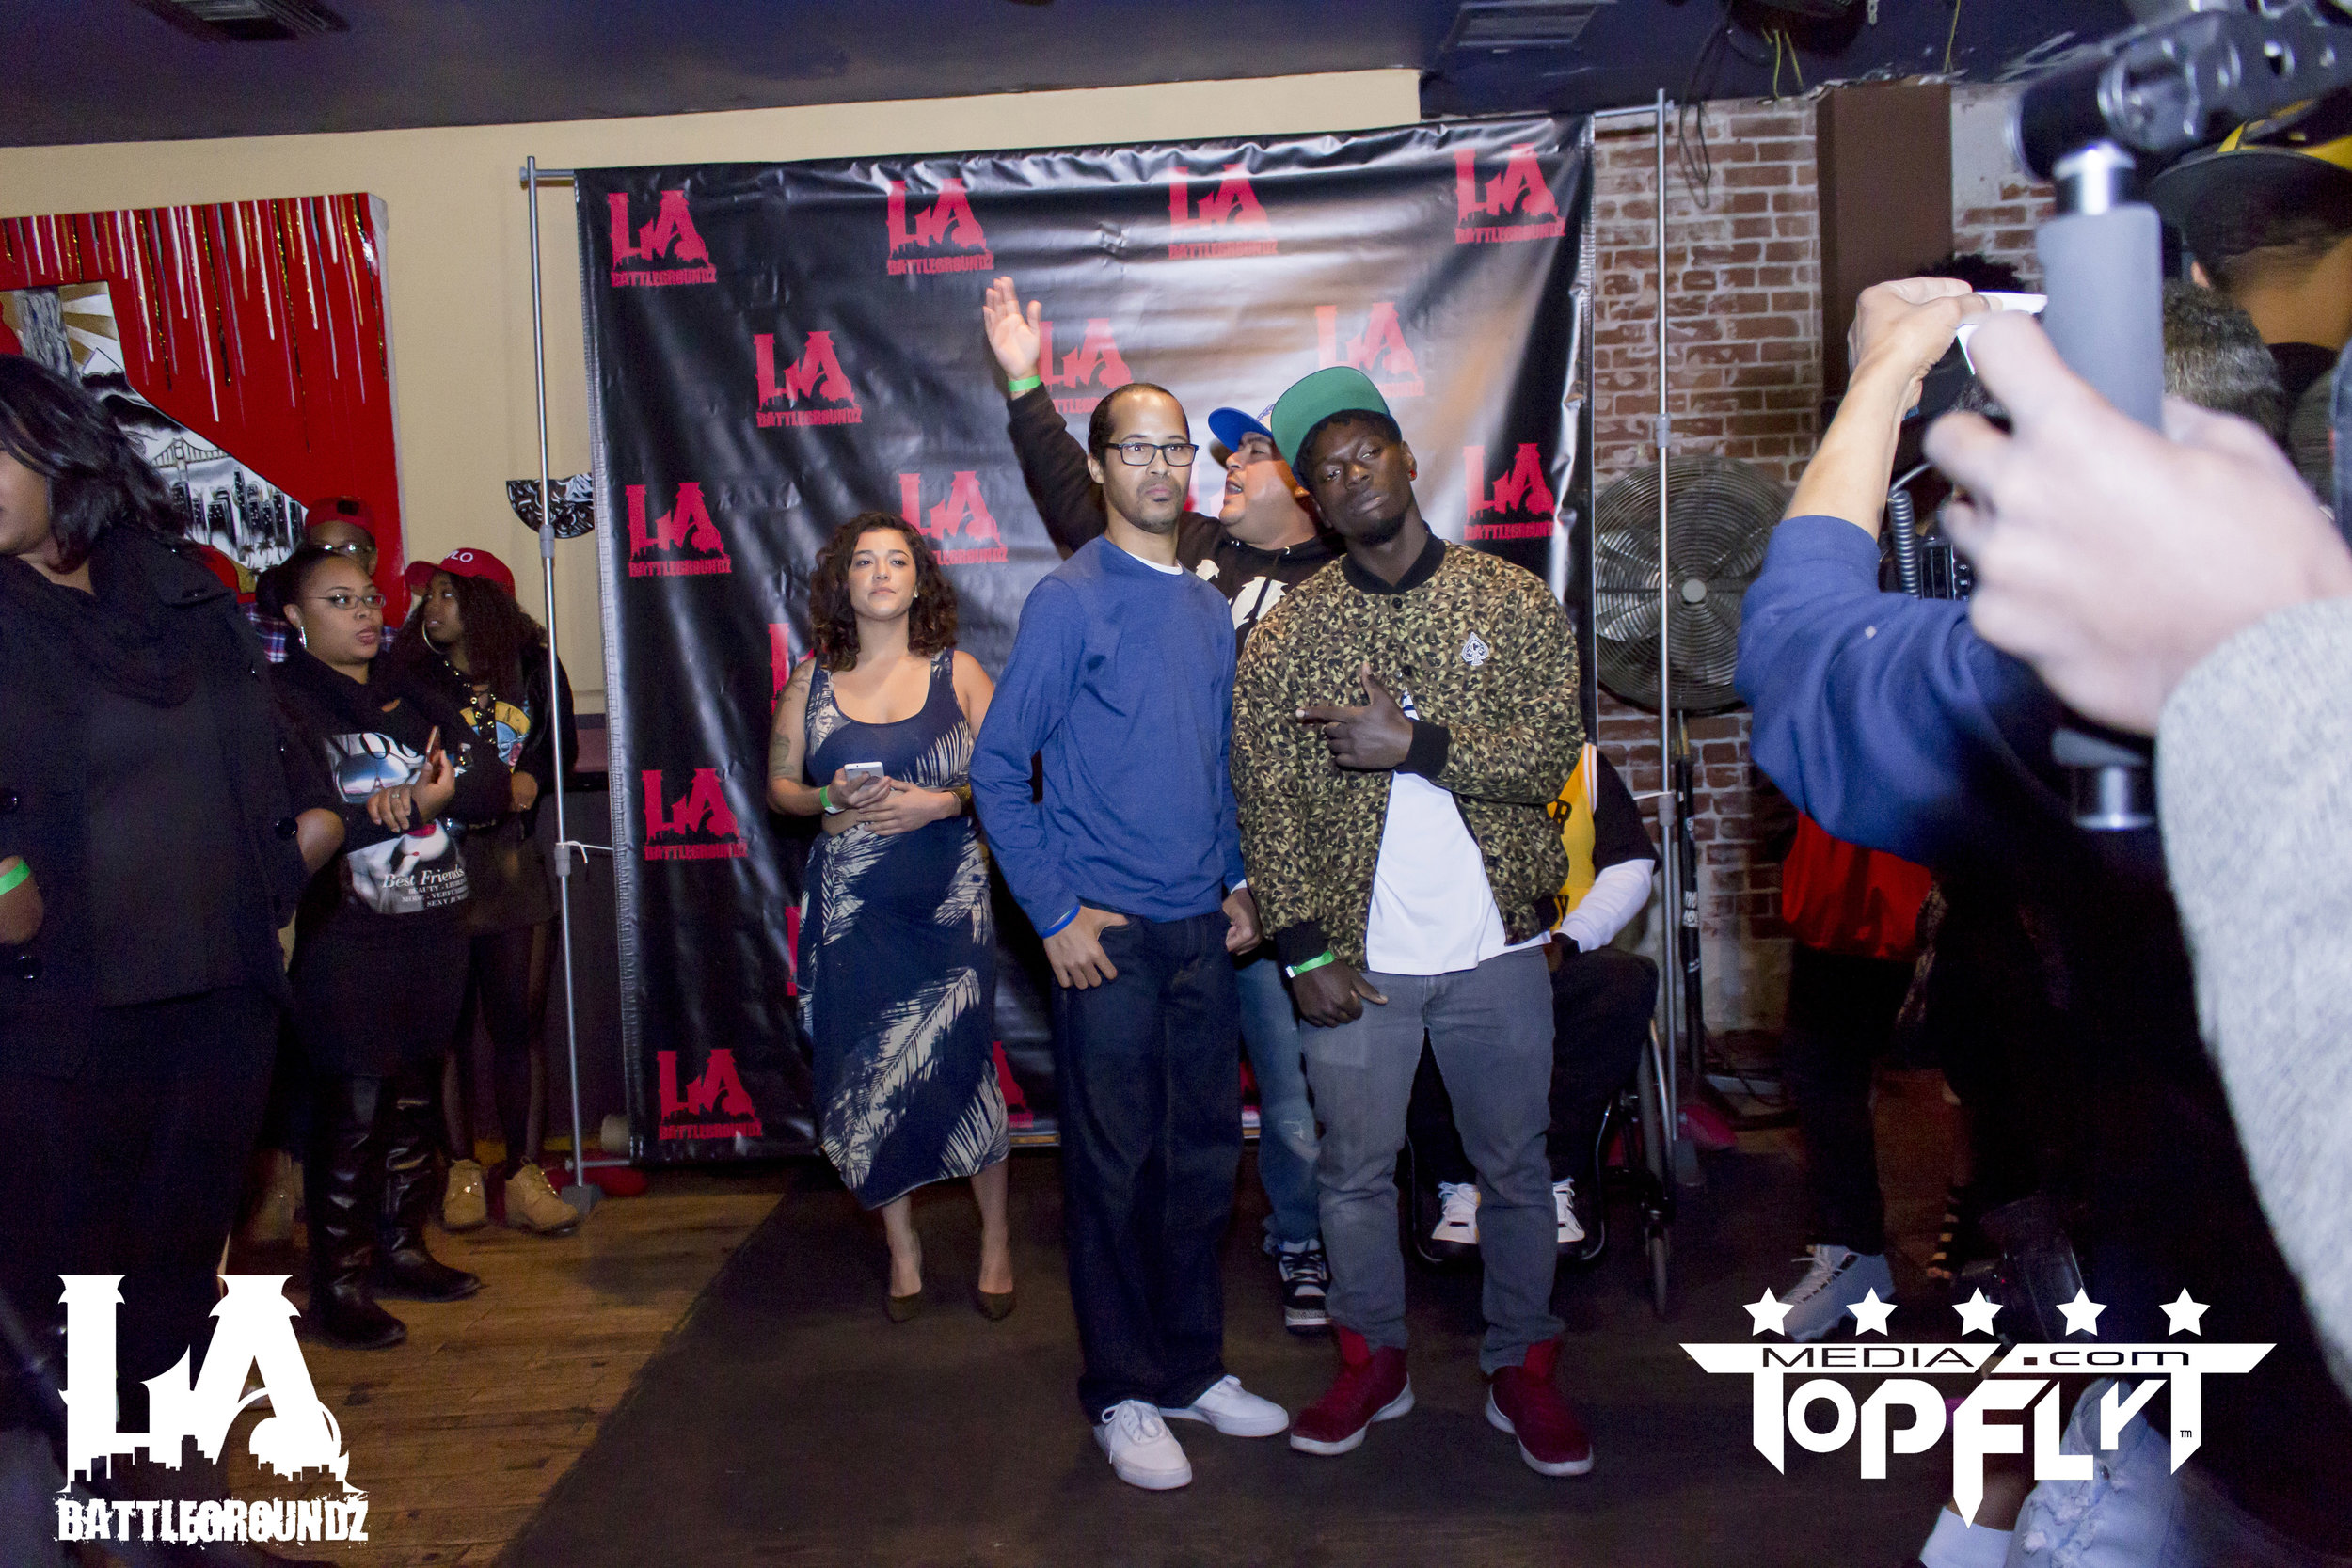 LA Battlegroundz - Decembarfest - The Christening_12.jpg